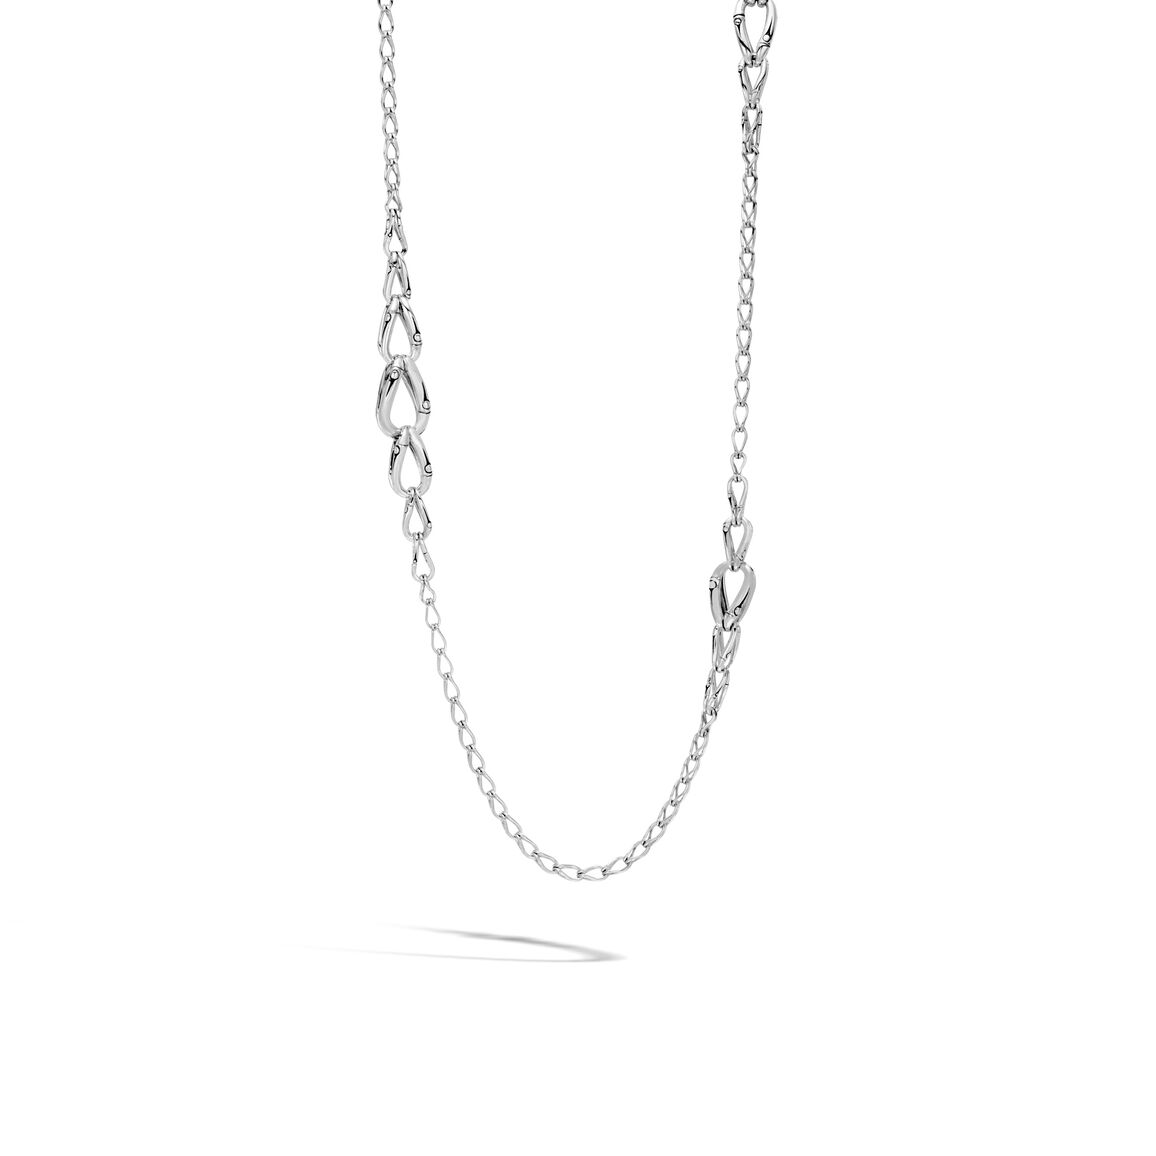 Bamboo 14MM Graduated Link Necklace in Silver